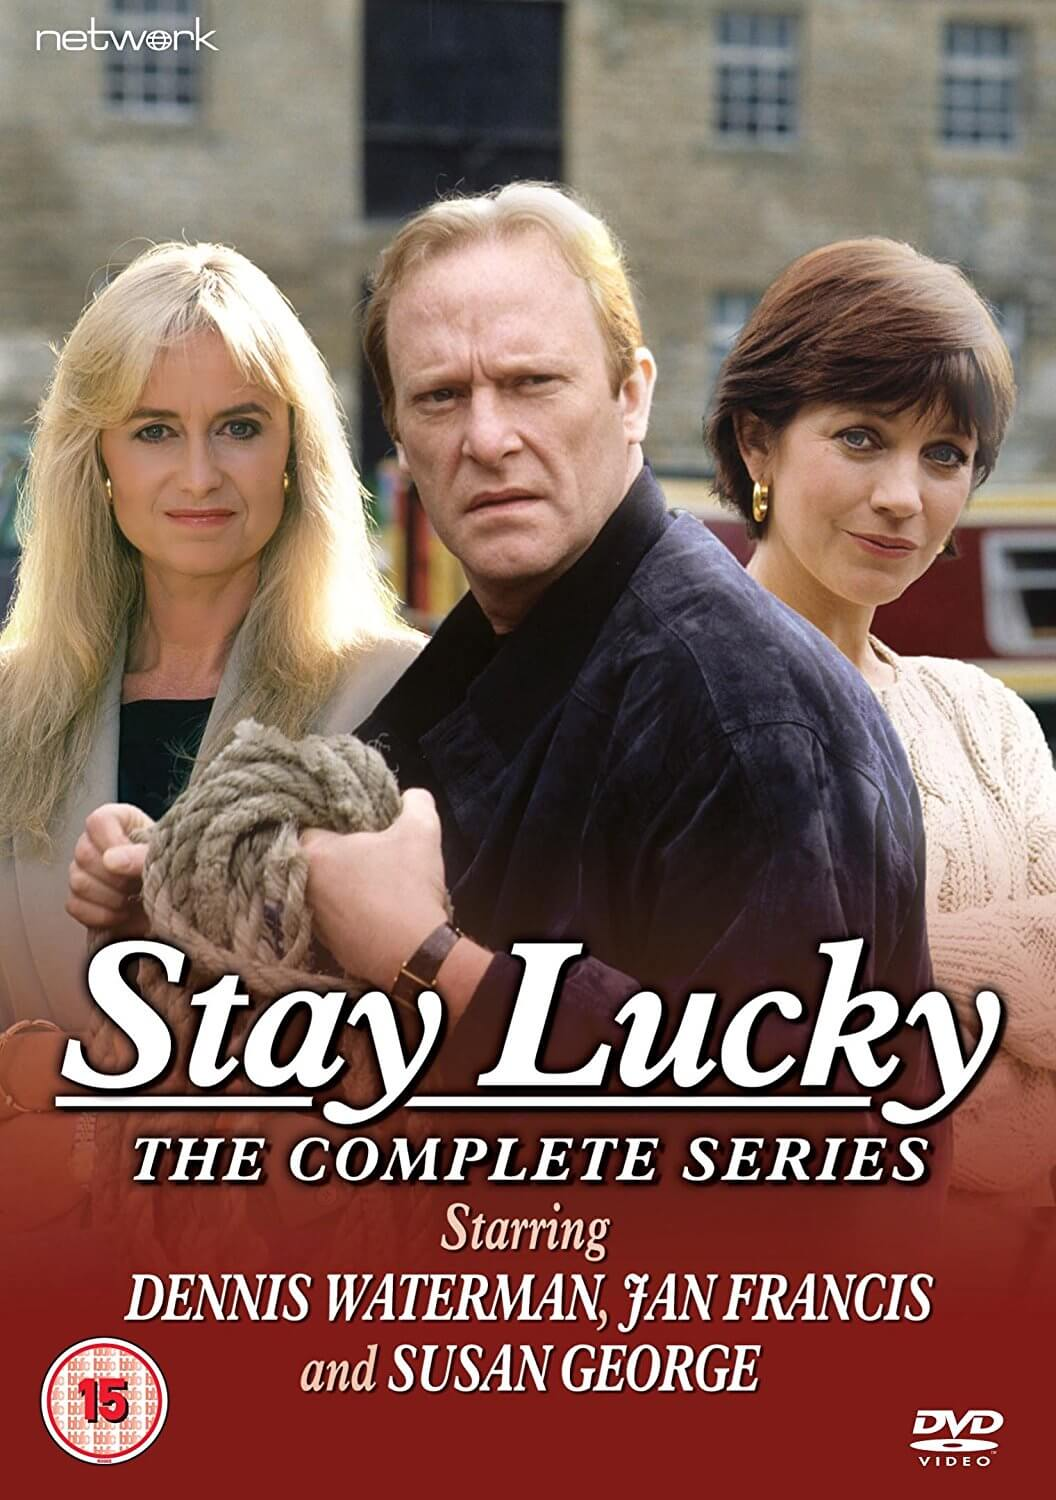 Stay Lucky - The Complete Series